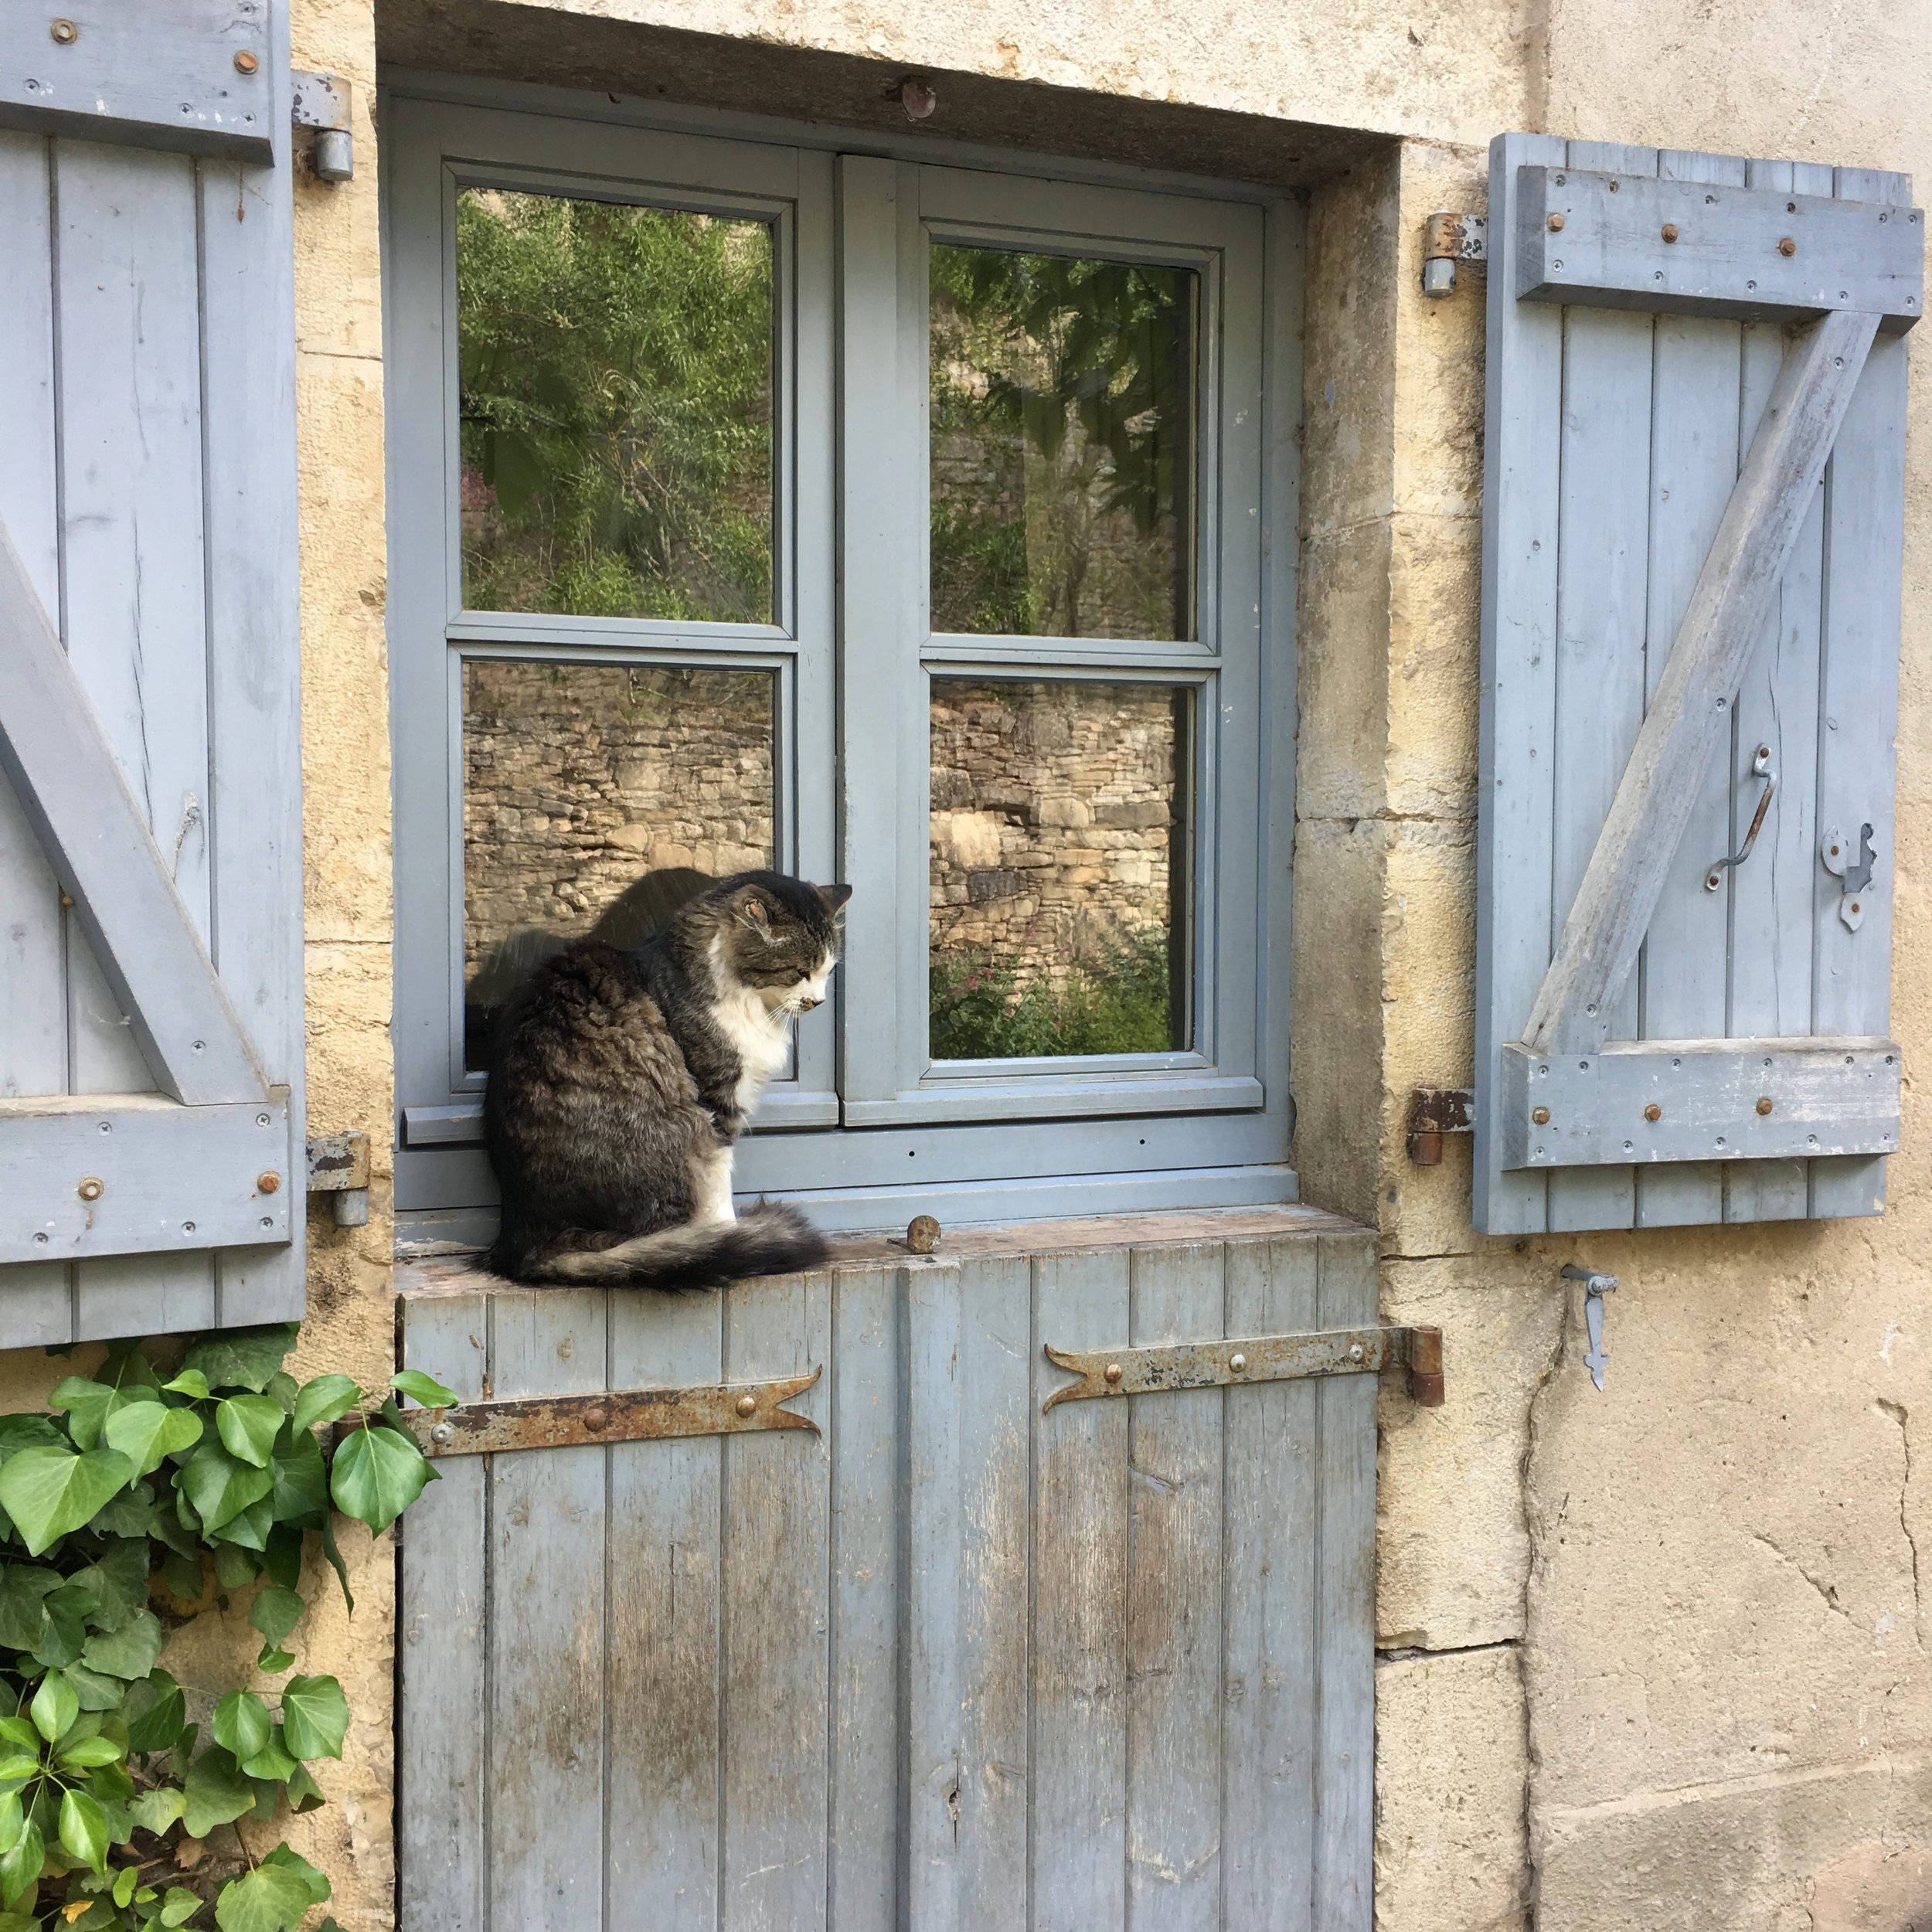 While walking through any town or village in France, you will see beautiful shutters. I love the small stone houses with their weathered wood  volets  in southwestern France. This pair included a sweet kitty who greeted me in the beautiful village of Najac.